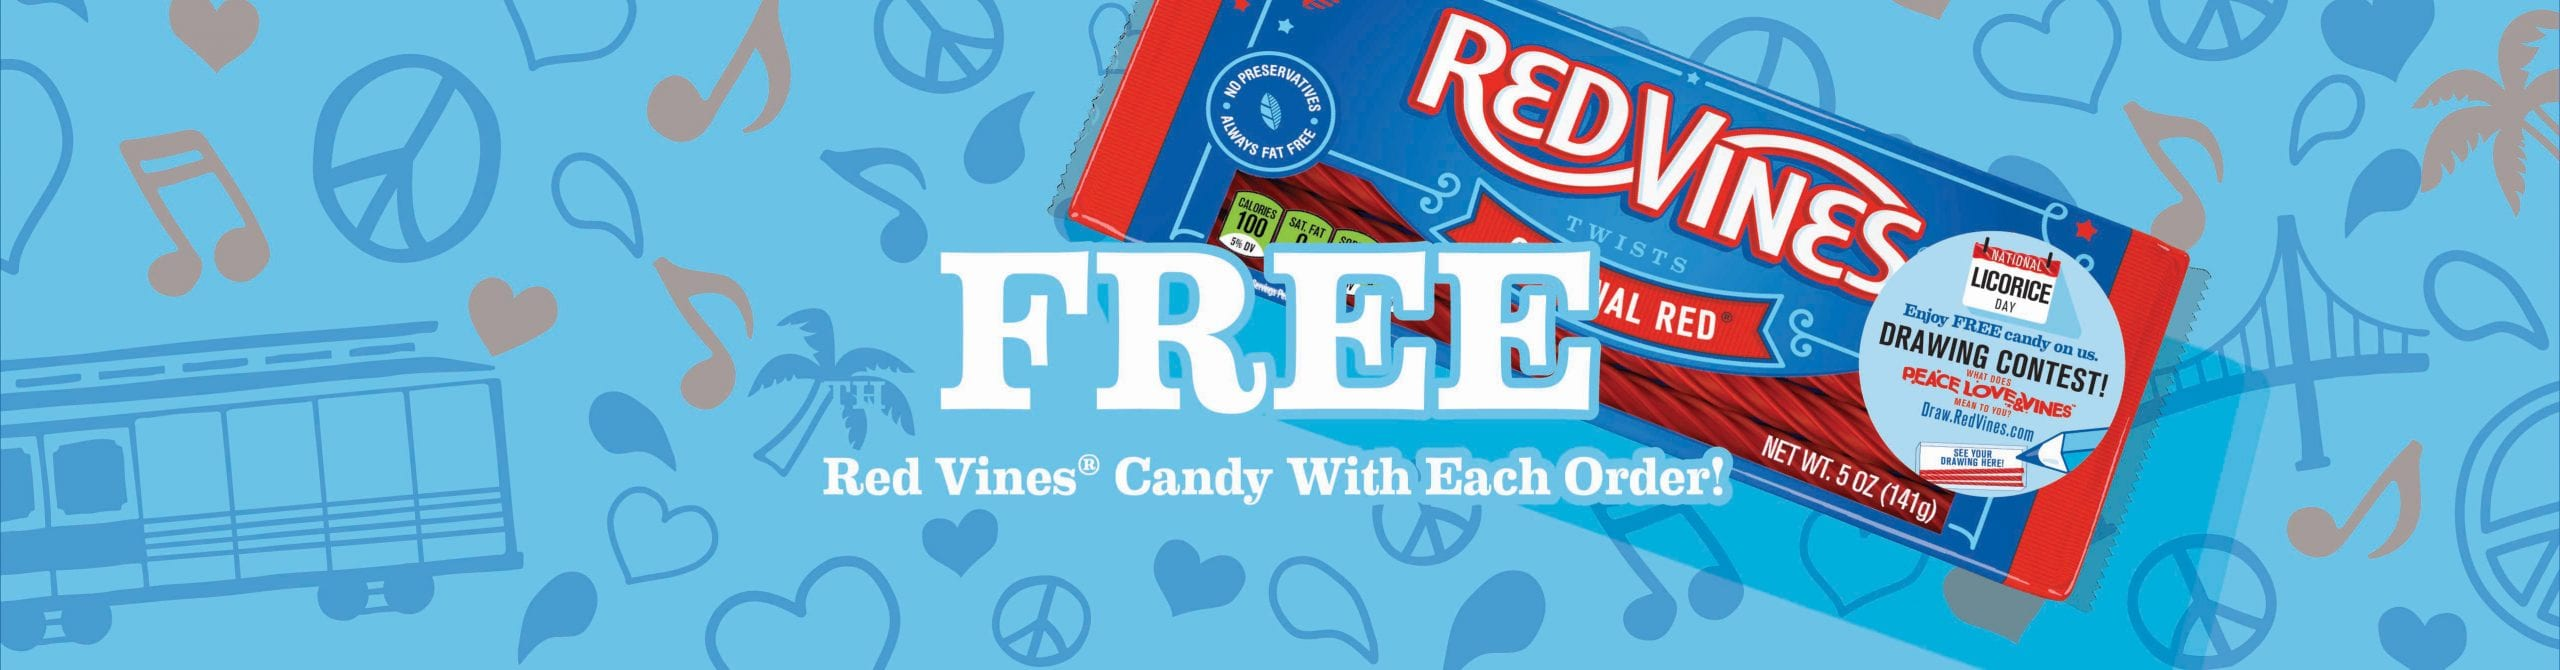 Free Red Vines Candy with Each Order!